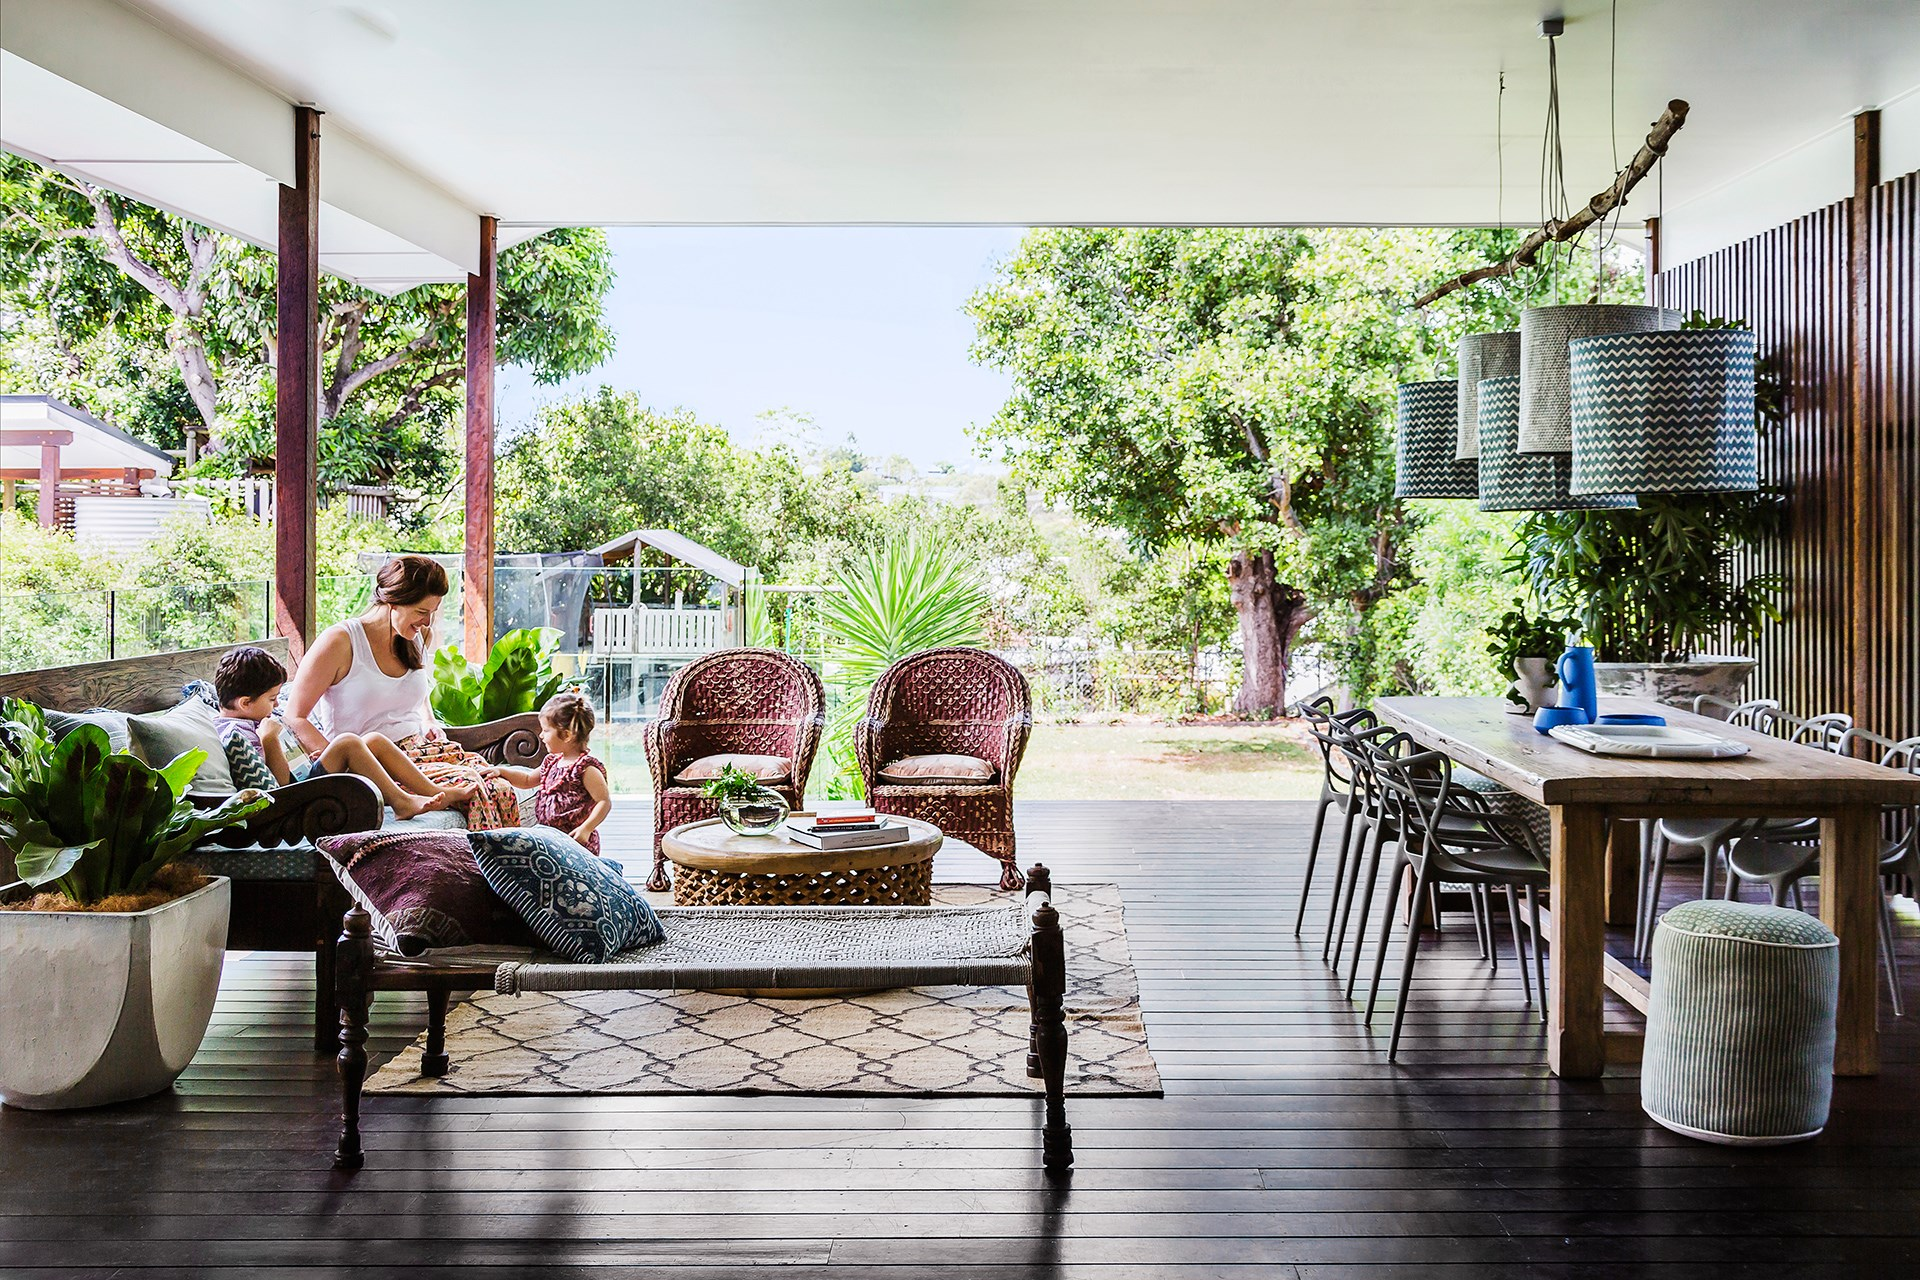 "To blur the transition between indoors and out, interior design Megan Brown of [Penman Brown](http://penmanbrown.com/?utm_campaign=supplier/|target=""_blank""